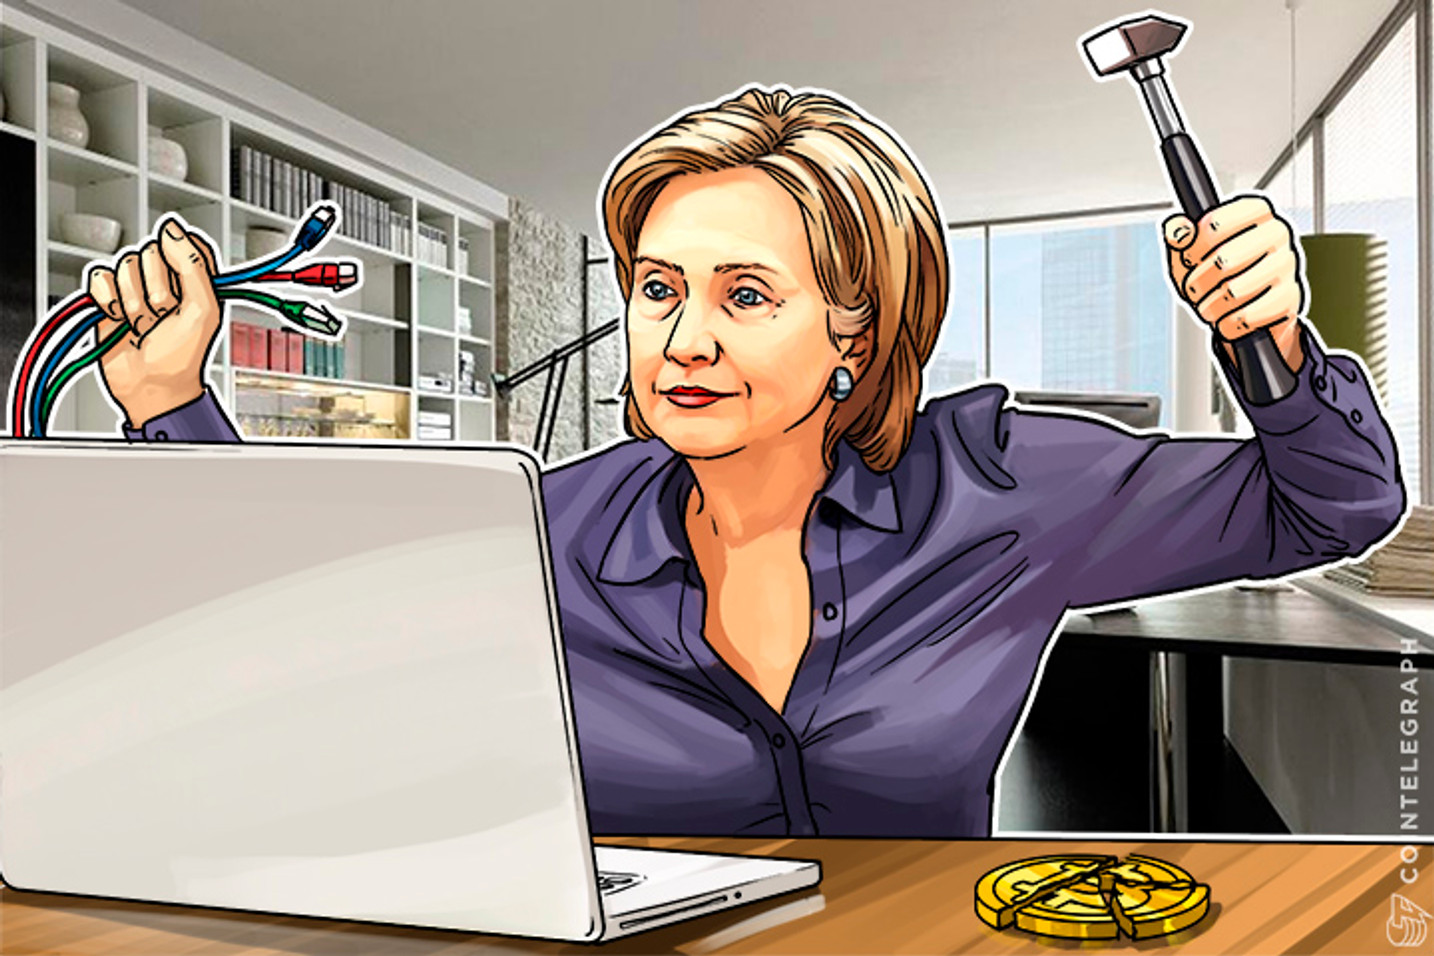 How Hillary Clinton Seeks to End The Internet, Bitcoin and The Free World (Op-Ed)